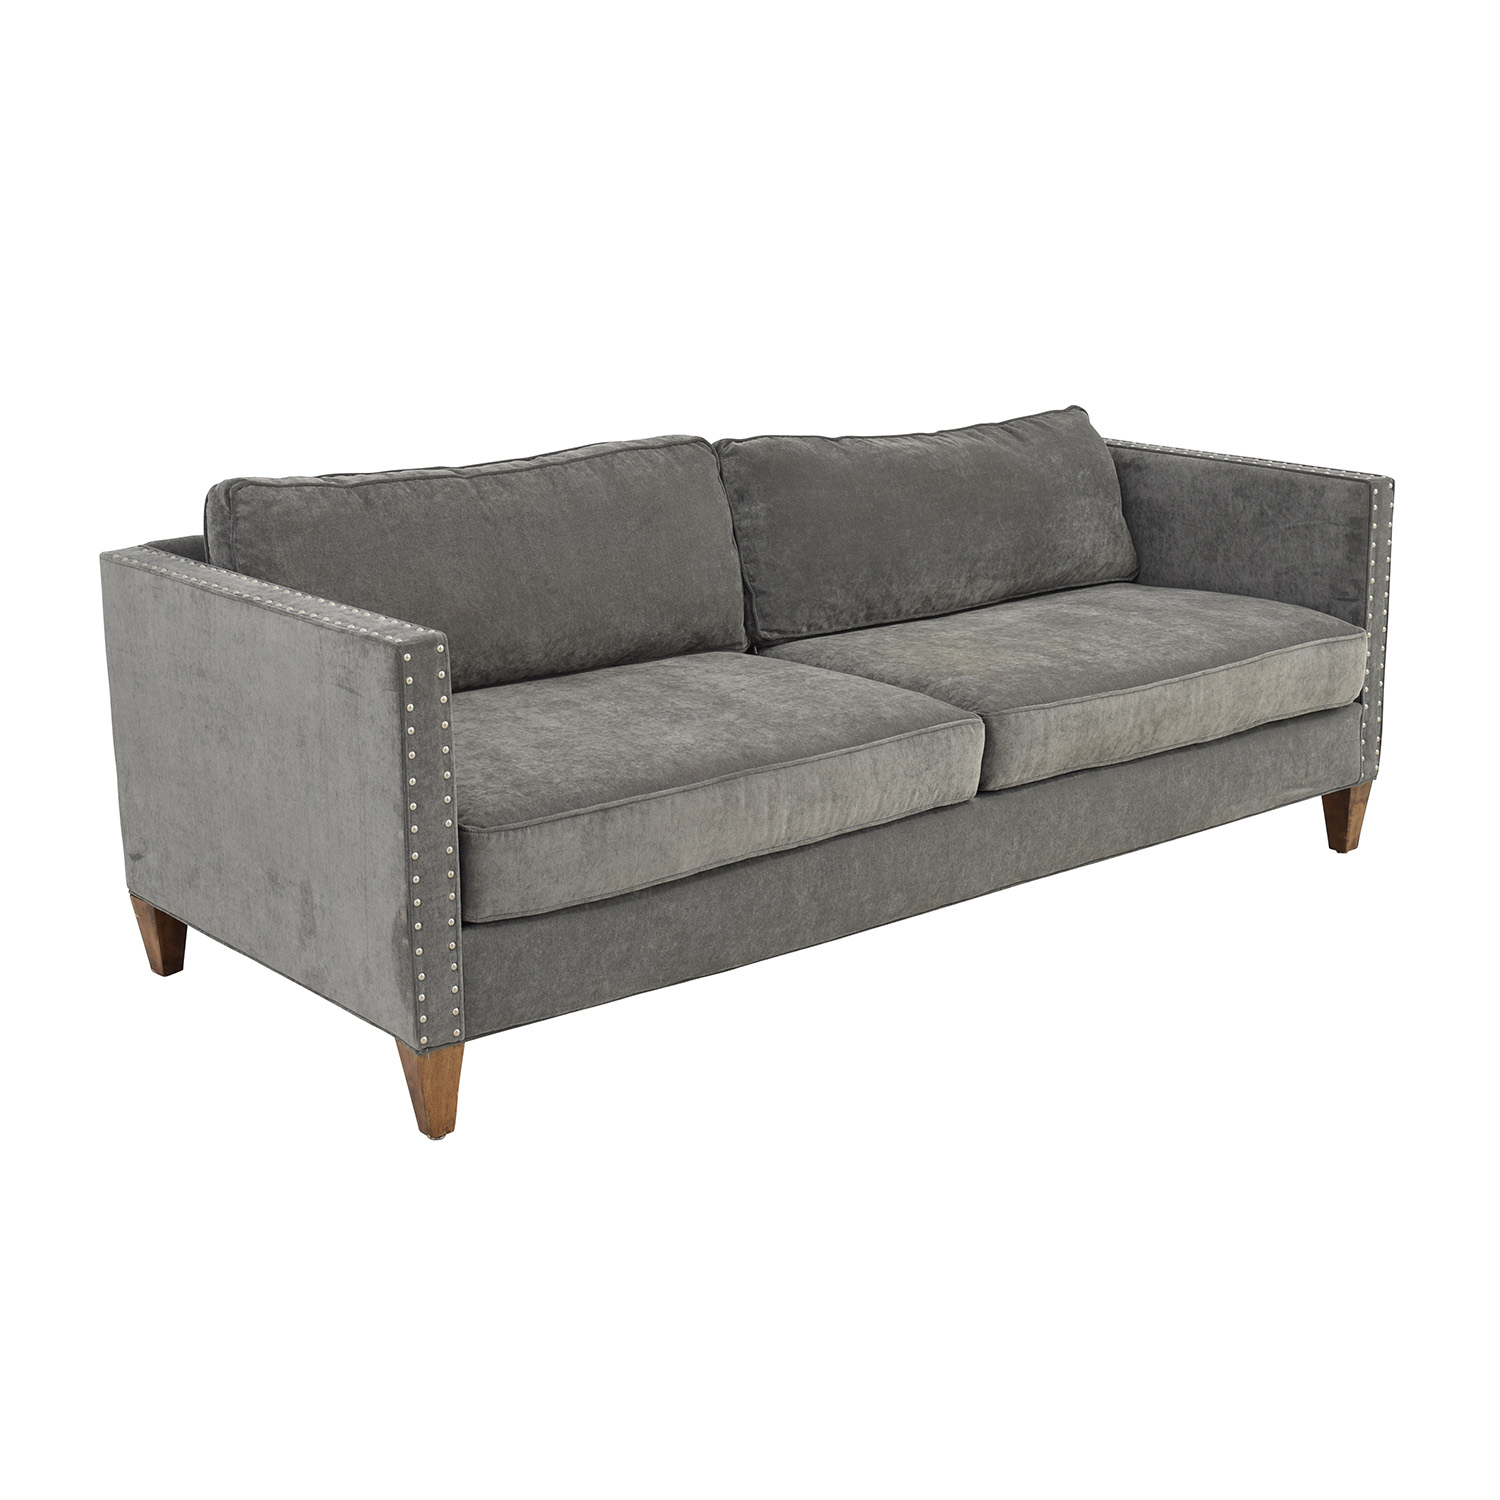 Grey studded sofa hereo sofa for Studded leather sofa